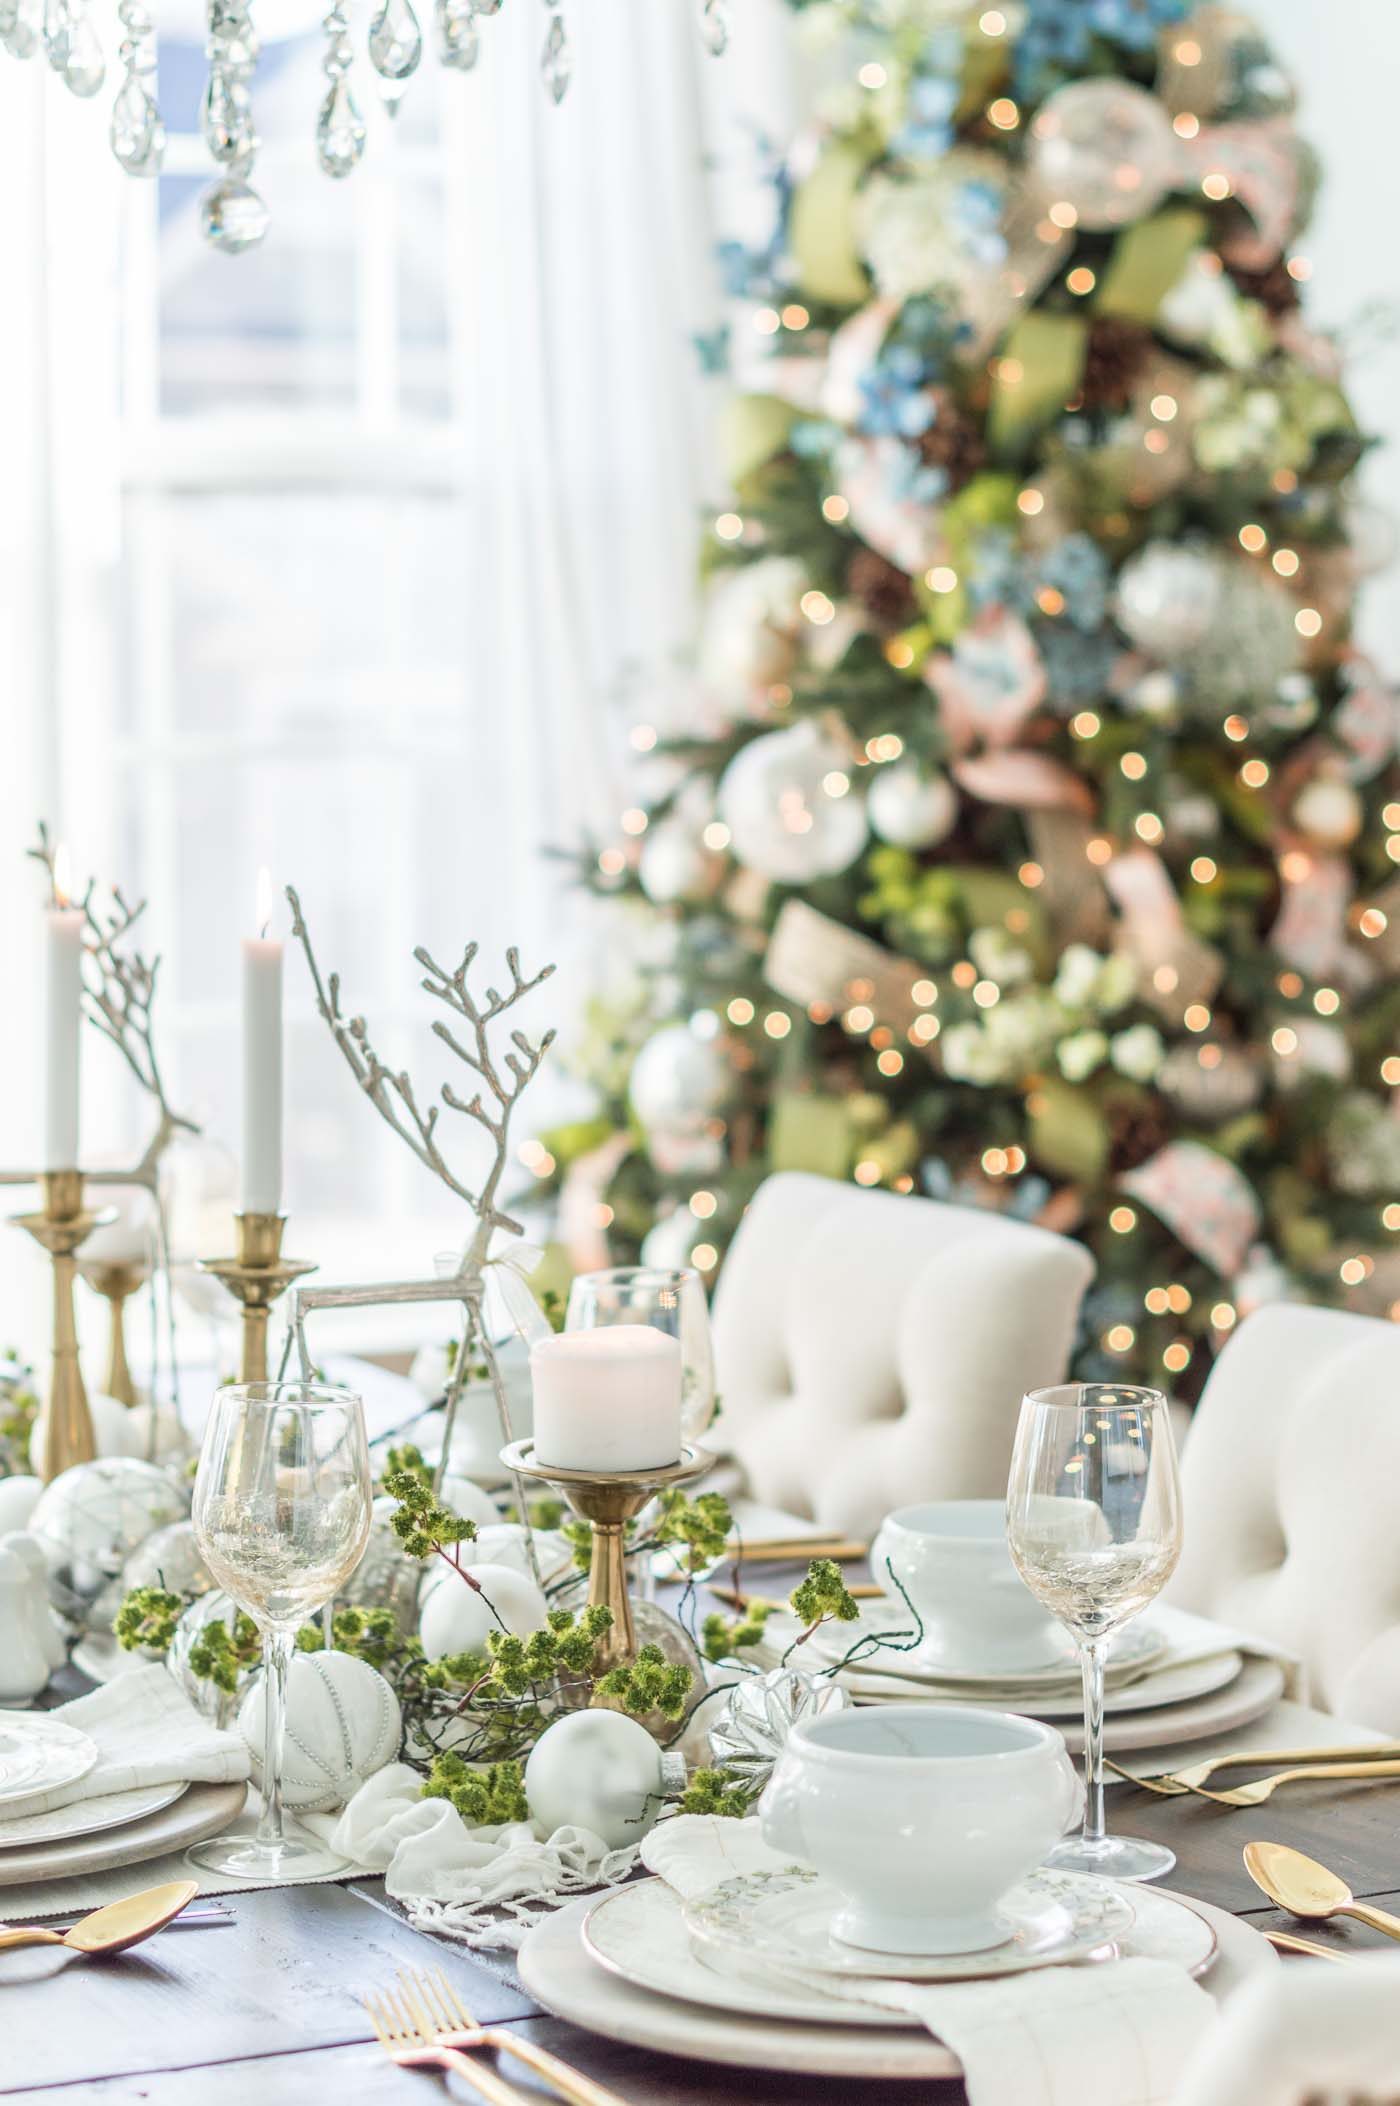 Christmas Table Decorations and Holiday Party Ideas in the Dining Room